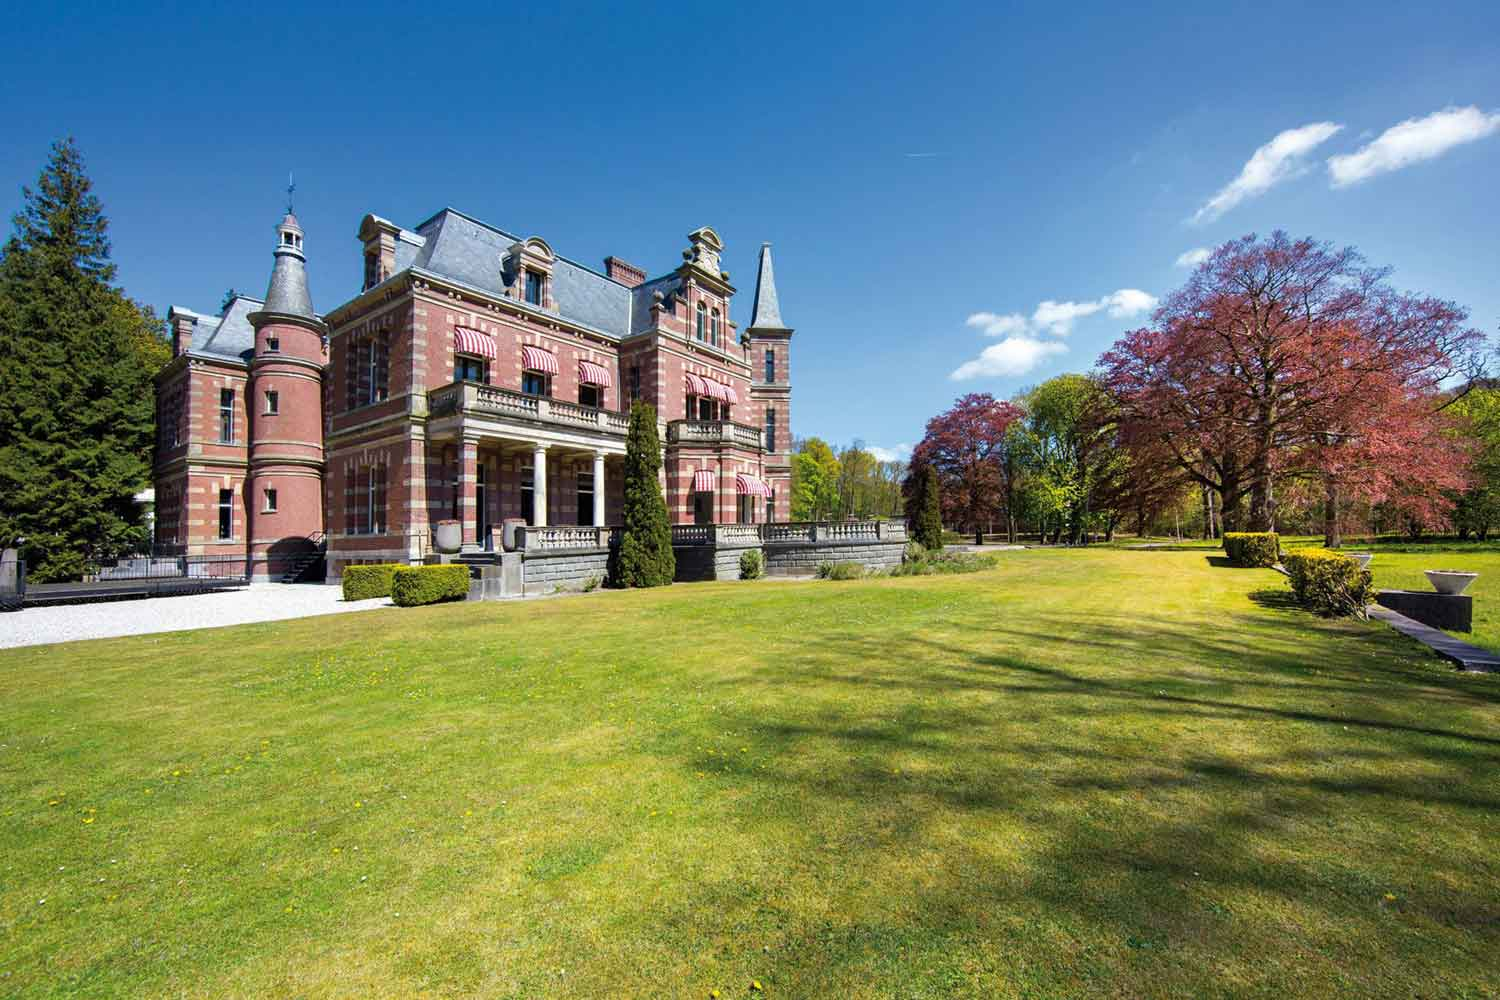 <b>North Holland, Netherlands</b><br/><i>20 Bedrooms, 24,326.64 sq. ft.</i><br/>A historical country estate with royal allure